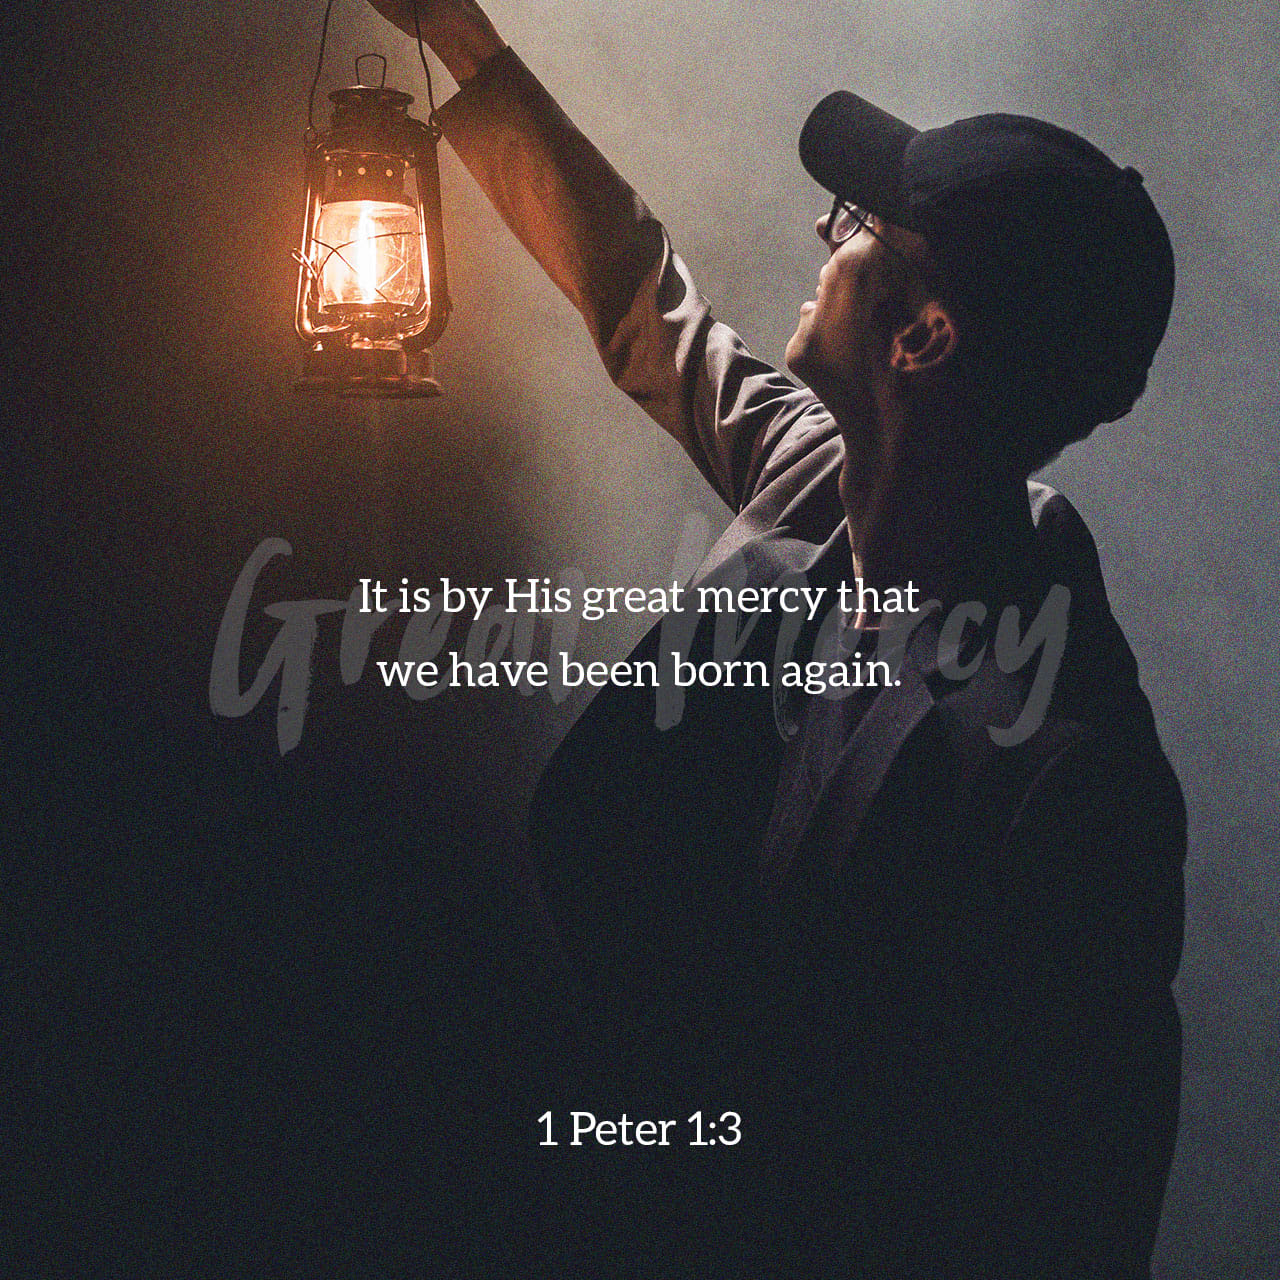 1 Peter 1:3 Praise be to the God and Father of our Lord Jesus Christ! In his great mercy he has given us new birth into a living hope through the resurrection of Jesus Christ from the dead | New International Version (NIV)